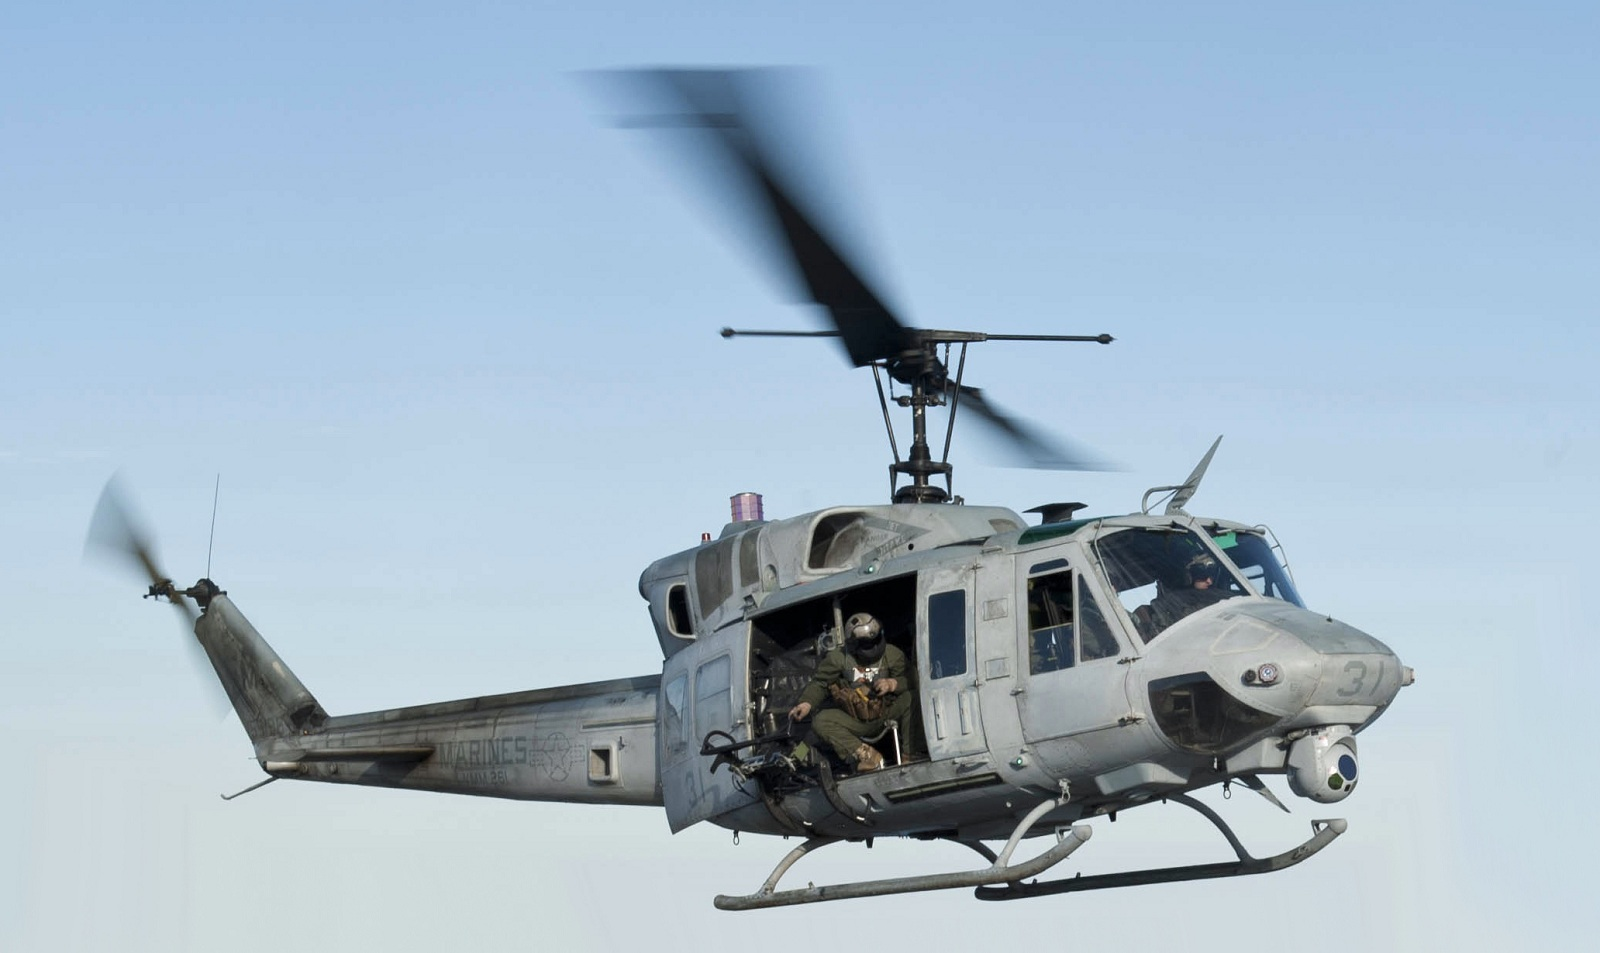 marine corps helicopters with Uh 1n Huey Retired From Usmc Service on Military Humor Quotes moreover Pentagon To Sell Off Its Ah 1w Super Cobra Attack Helicopter Fleet moreover French Army On Operations In Aghanistan also Royal Navy Cyprus together with Lockheed C 130 Models.